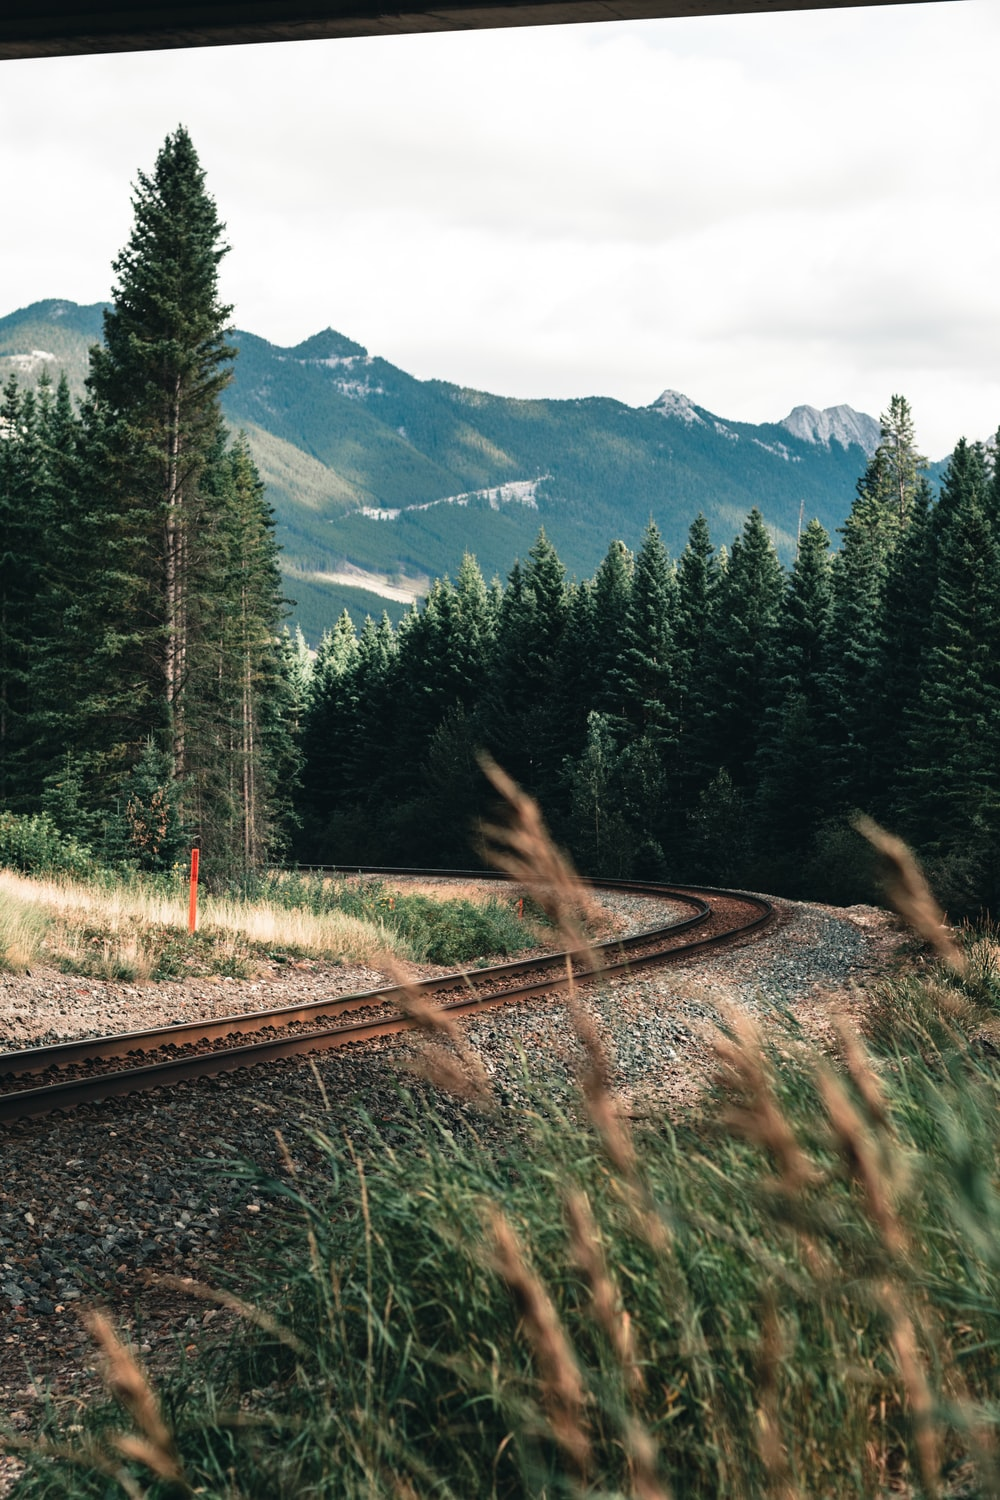 train rail near green pine trees and mountains during daytime